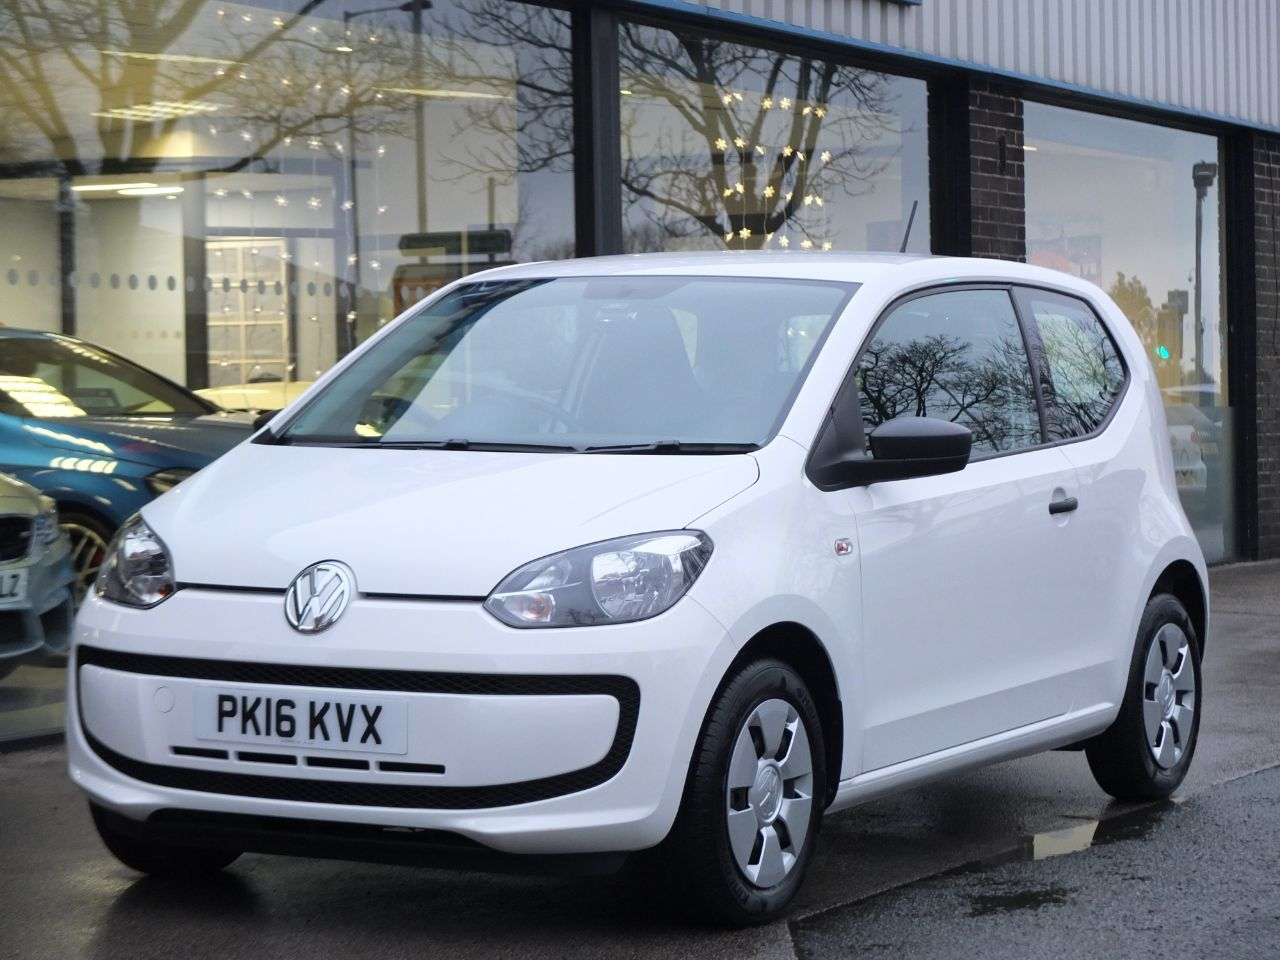 Volkswagen Up 1.0 Take Up 3 door Hatchback Petrol Candy WhiteVolkswagen Up 1.0 Take Up 3 door Hatchback Petrol Candy White at fa Roper Ltd Bradford